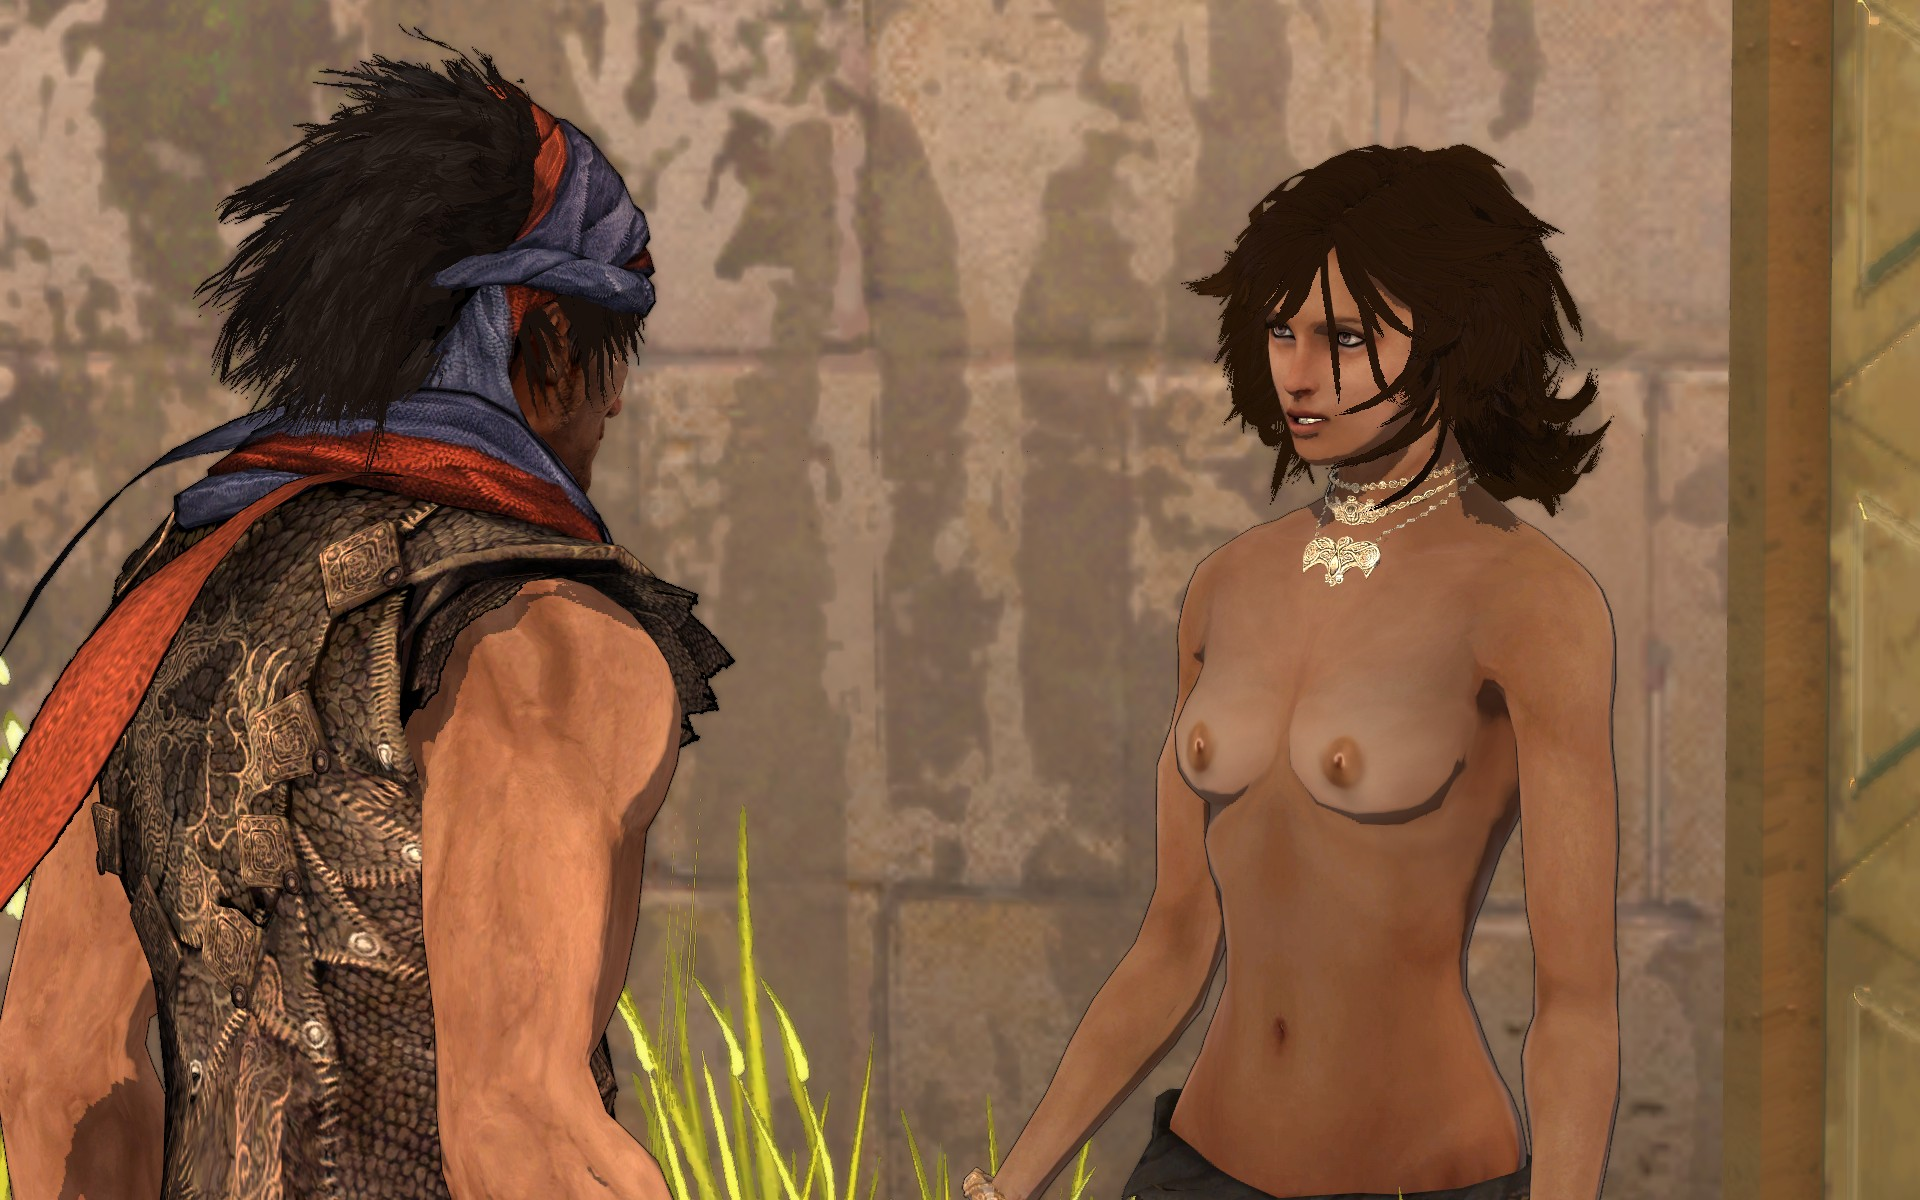 Hot sexy prince of persia charecters nude  sex pussies